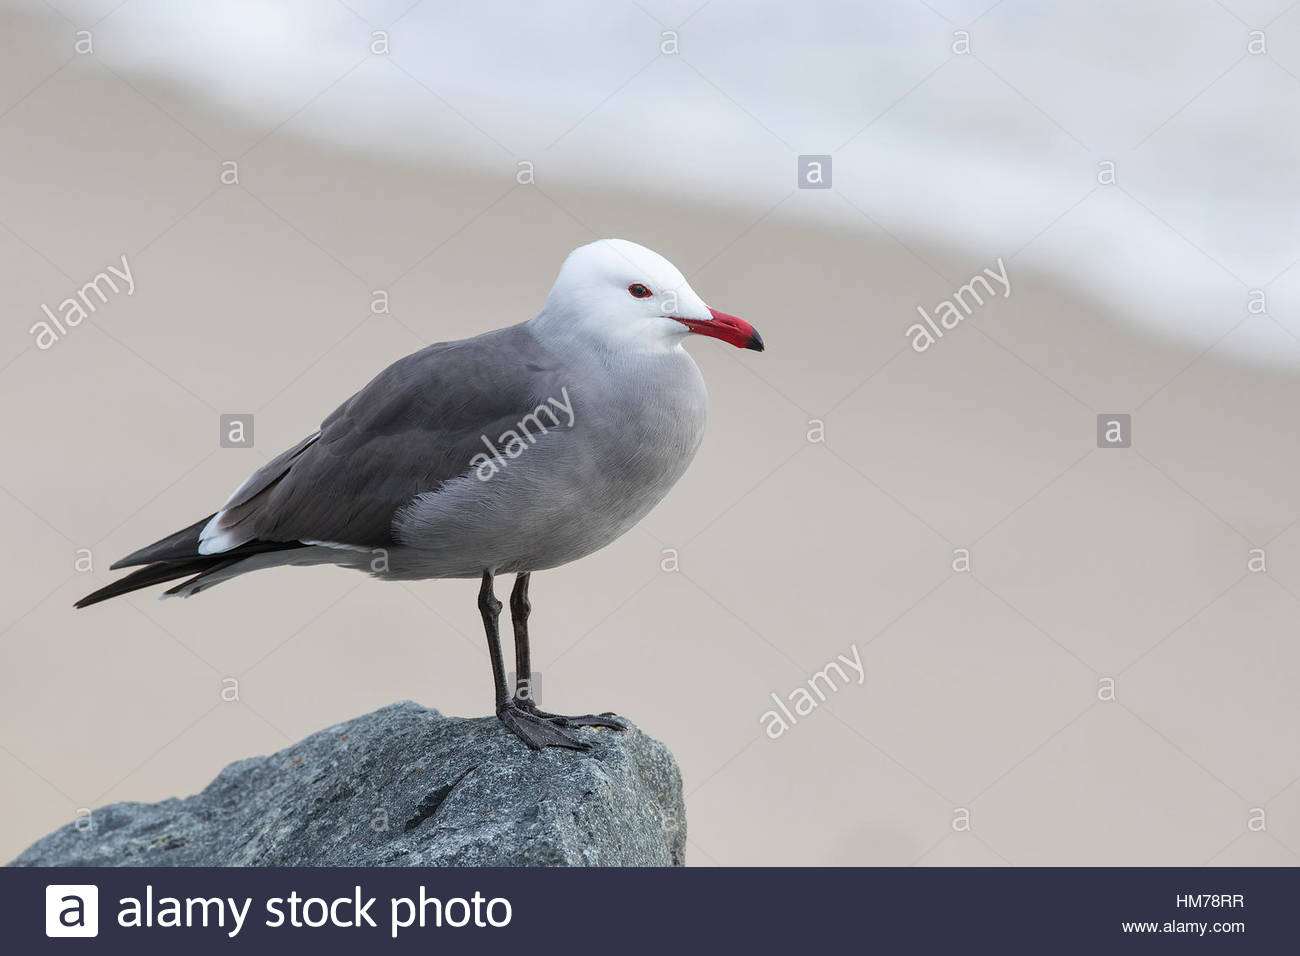 With a Pacific Ocean wave in the background, a Heermann's gull (Larus heermanni) rests on a rock overlooking - Stock Image